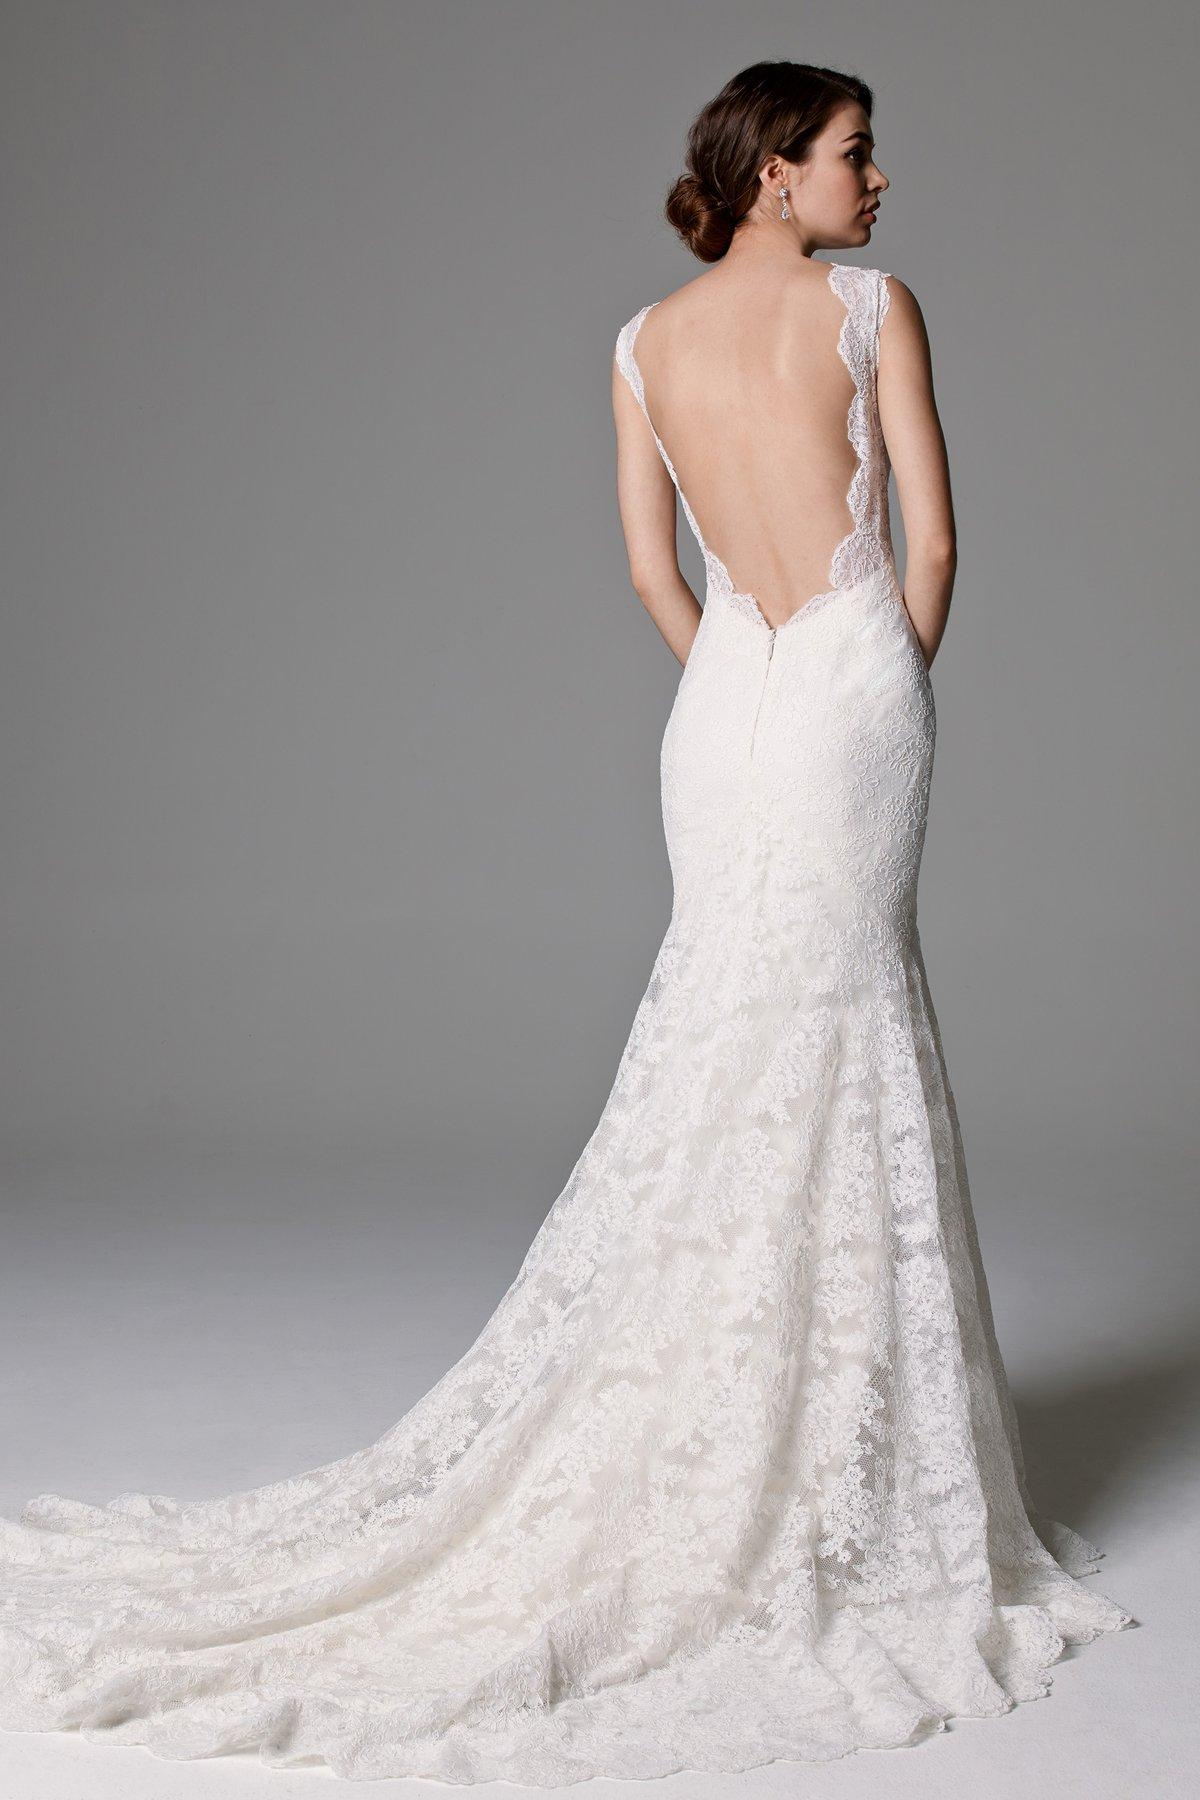 Exquisite V Neck Mermaid Lace Patterns Weddin Dress with